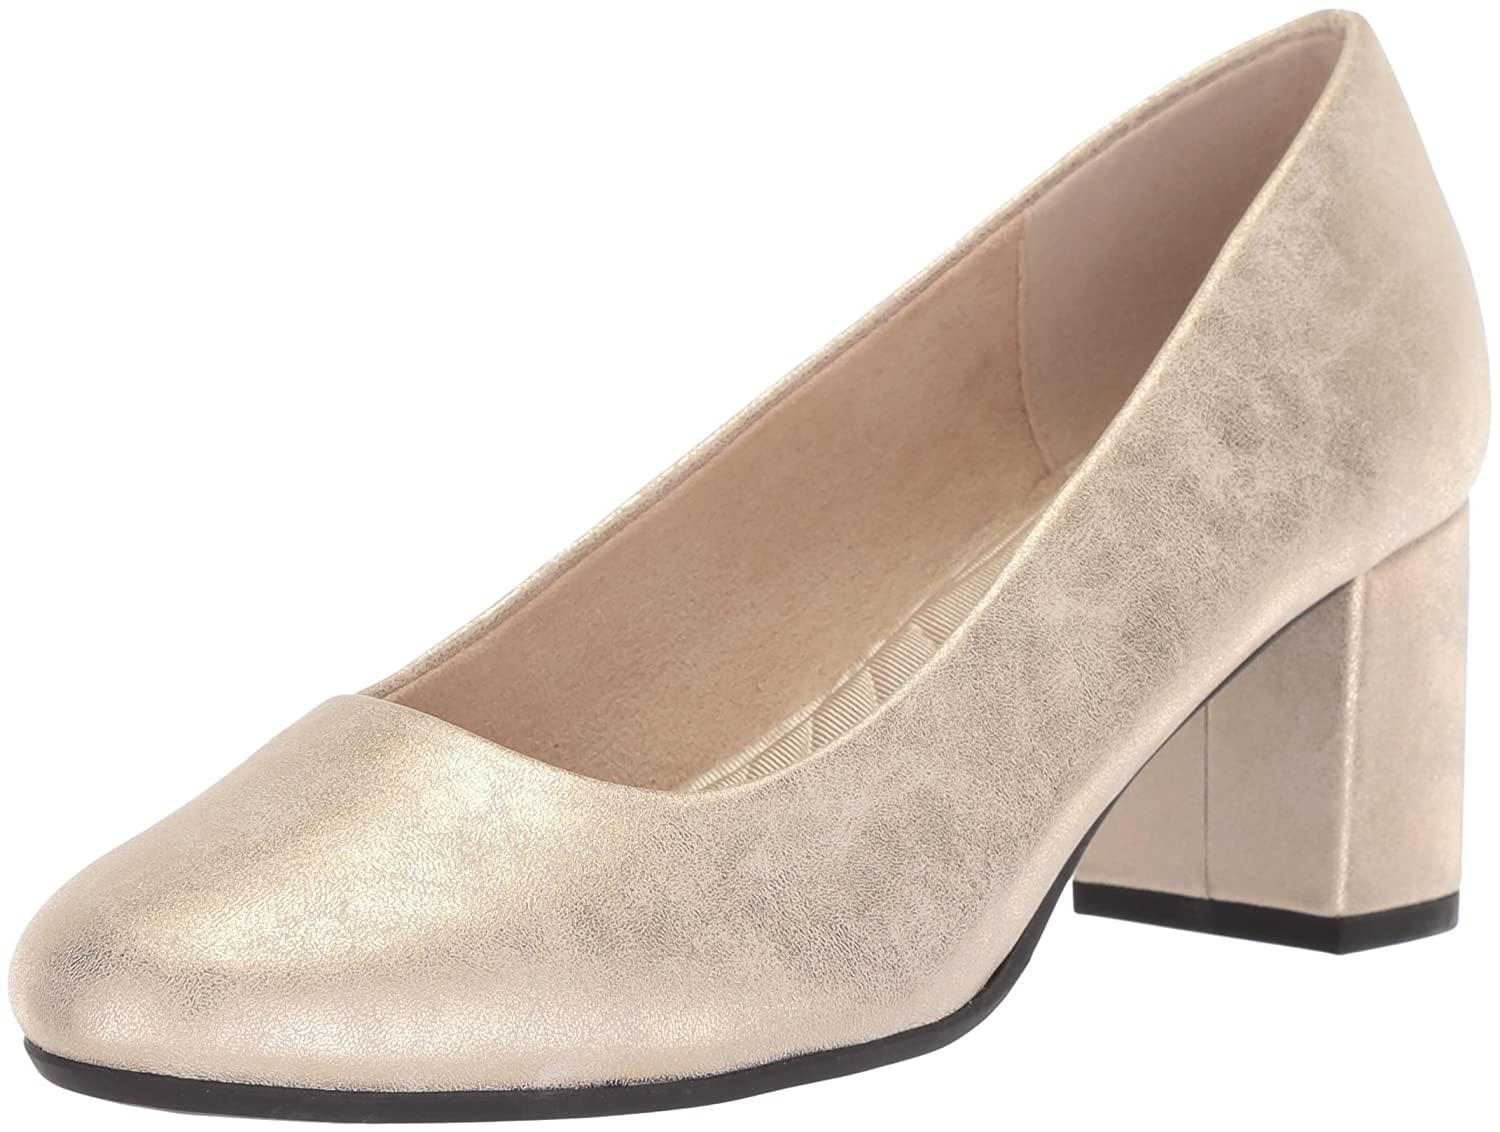 Easy Street Women's Proper Pump B077ZMJWJH 7 N US|Gold/Metallic